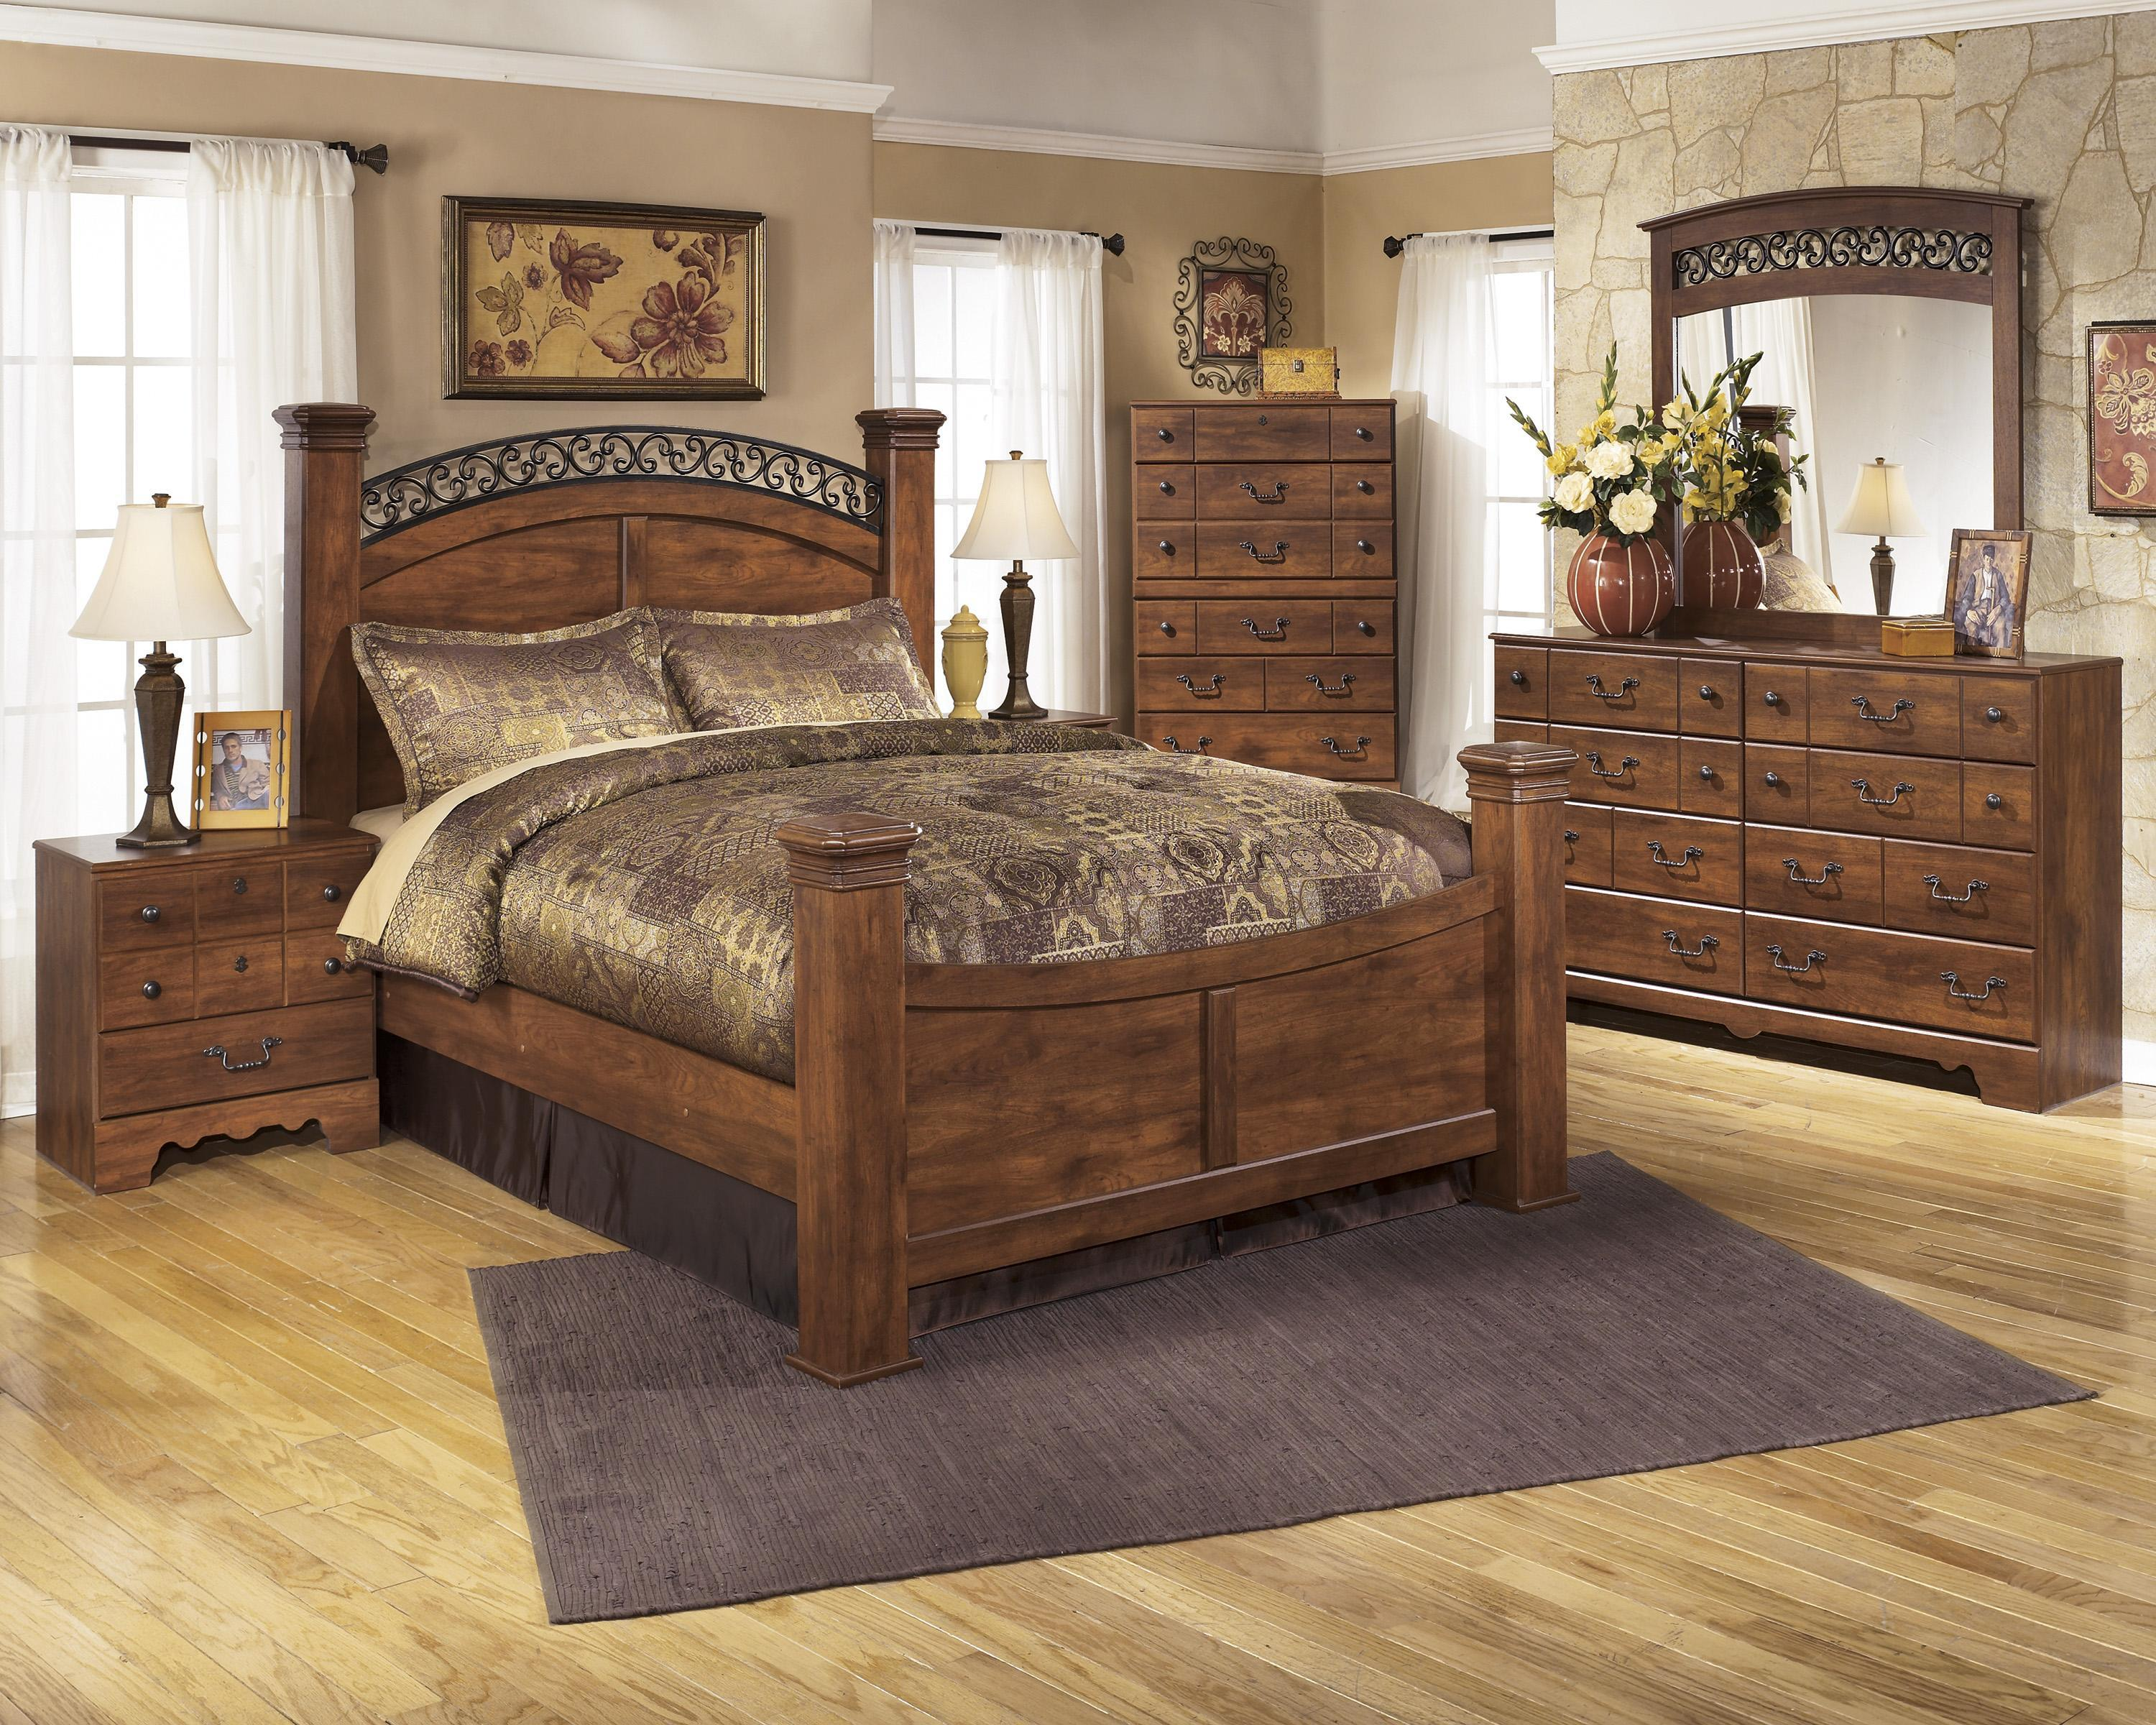 Signature design by ashley timberline b258 q bedroom group for 3 bedroom set